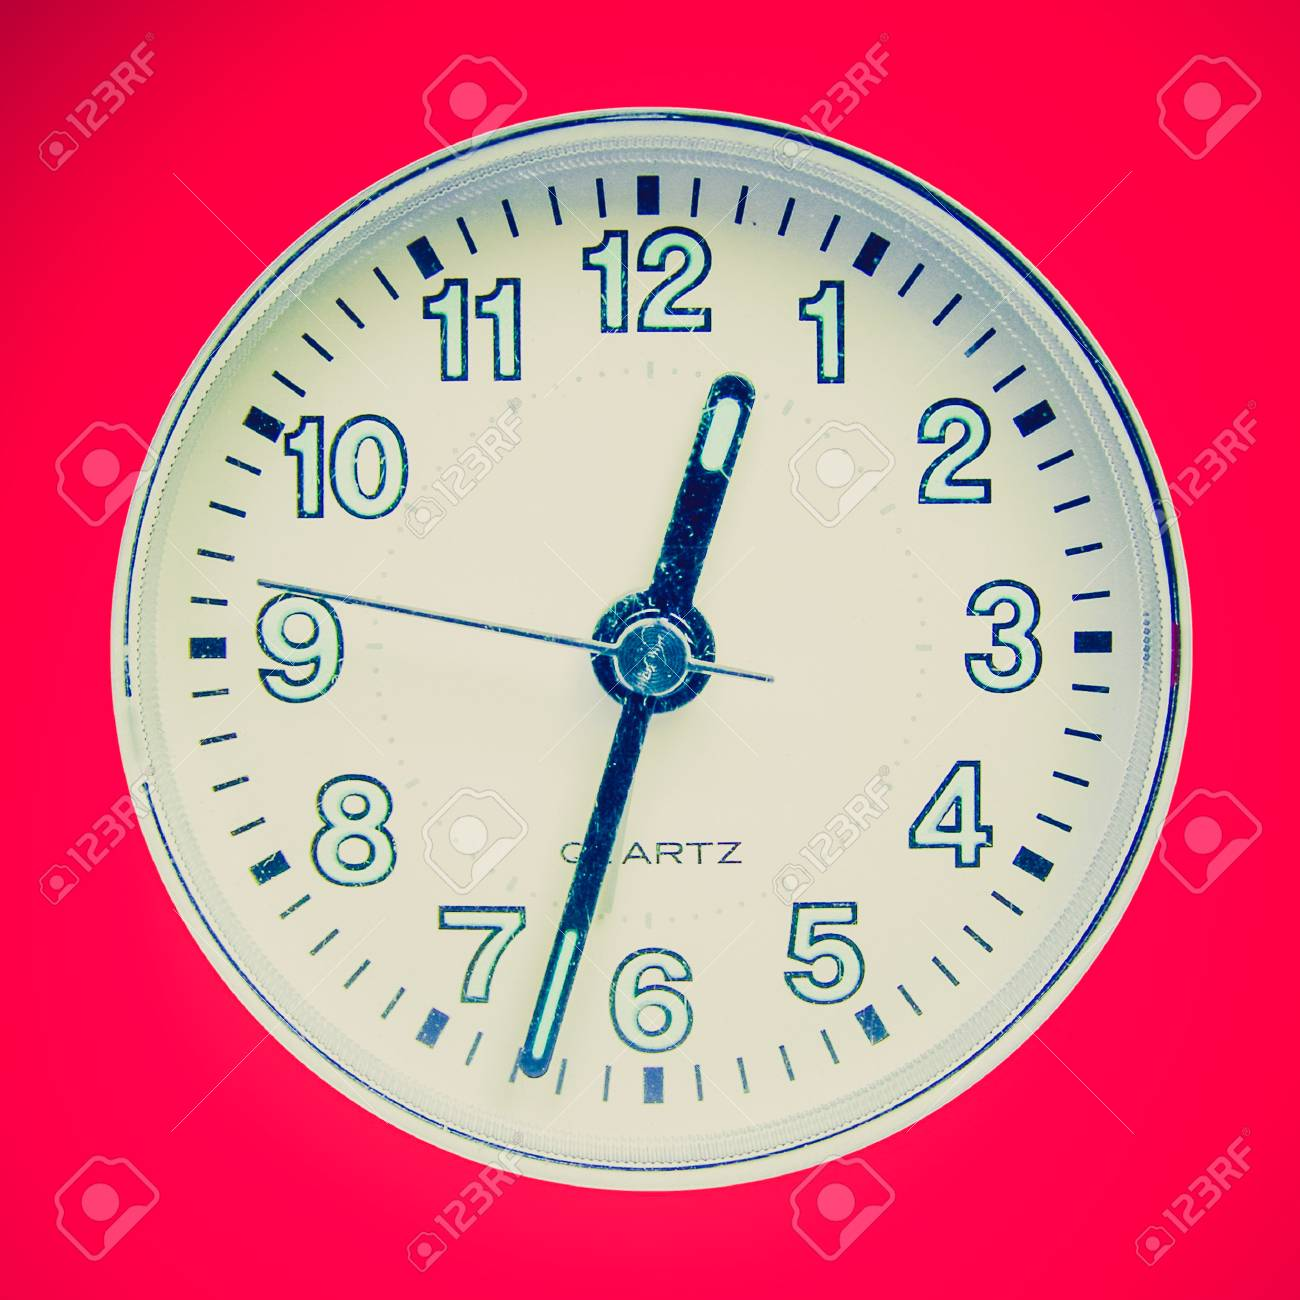 Vintage Looking Alarm Clock Stock Photo Picture And Royalty Free